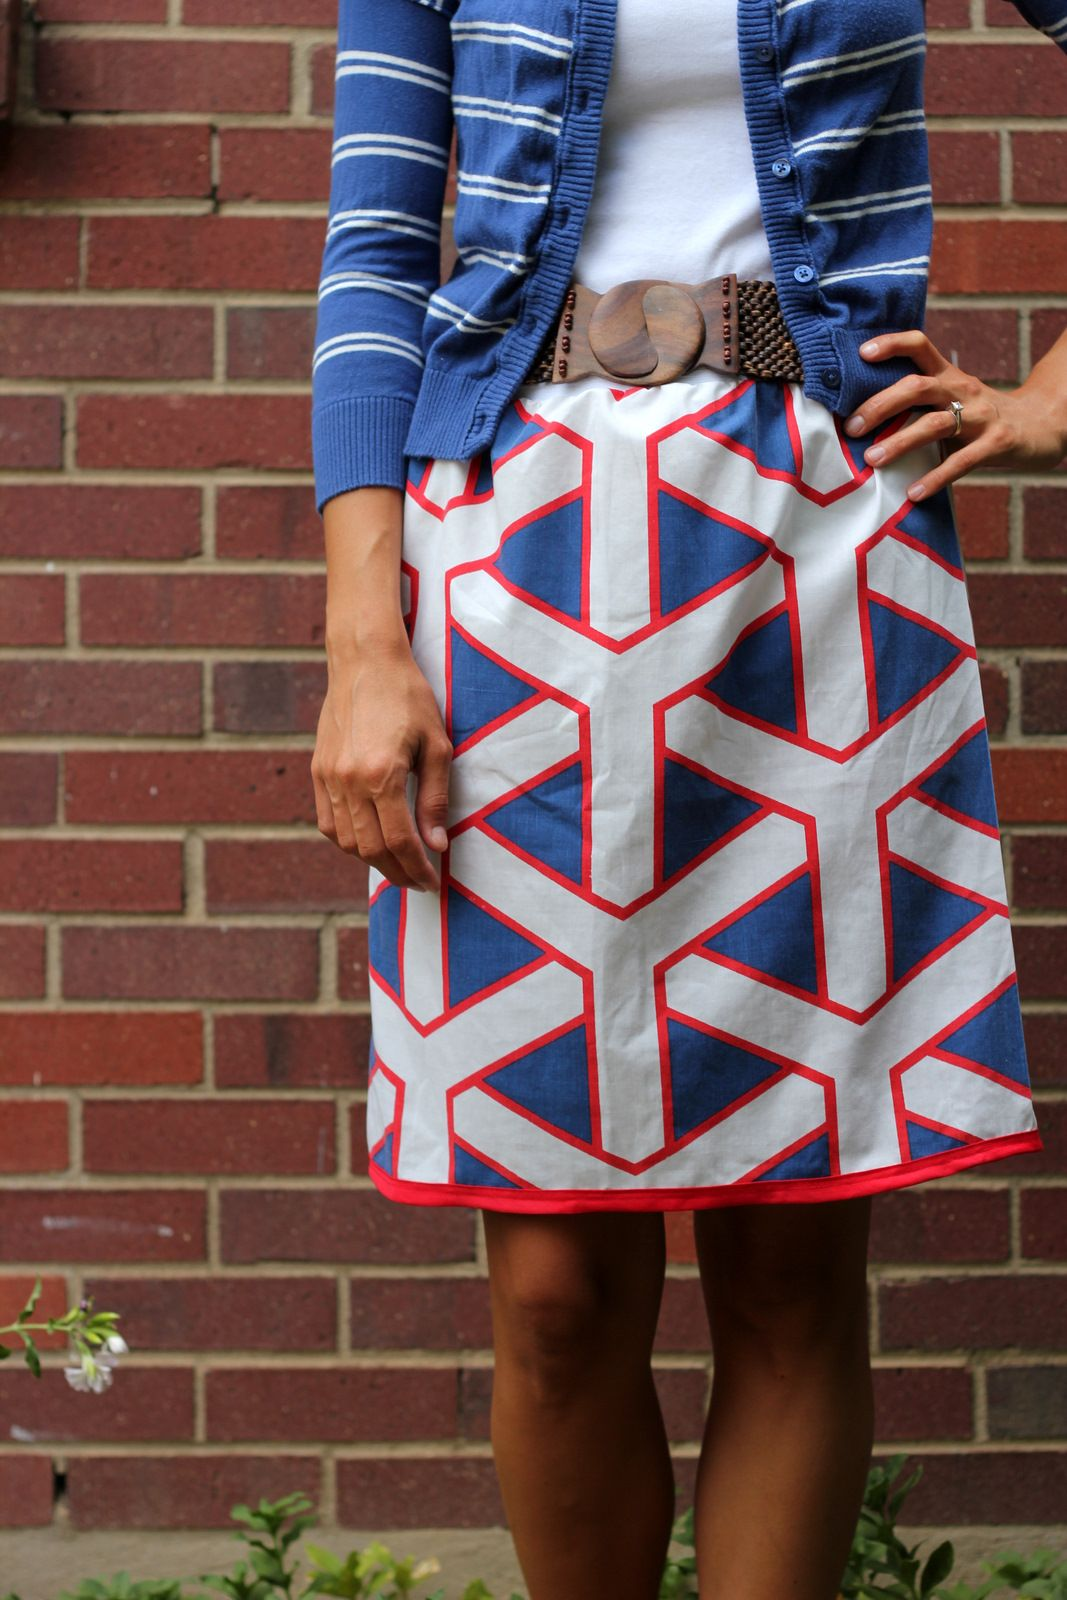 Awesome cool pillowcase skirt from Kirsten of \u0027Kojo Designs\u0027 score the look by & Awesome cool pillowcase skirt from Kirsten of \u0027Kojo Designs ... pillowsntoast.com